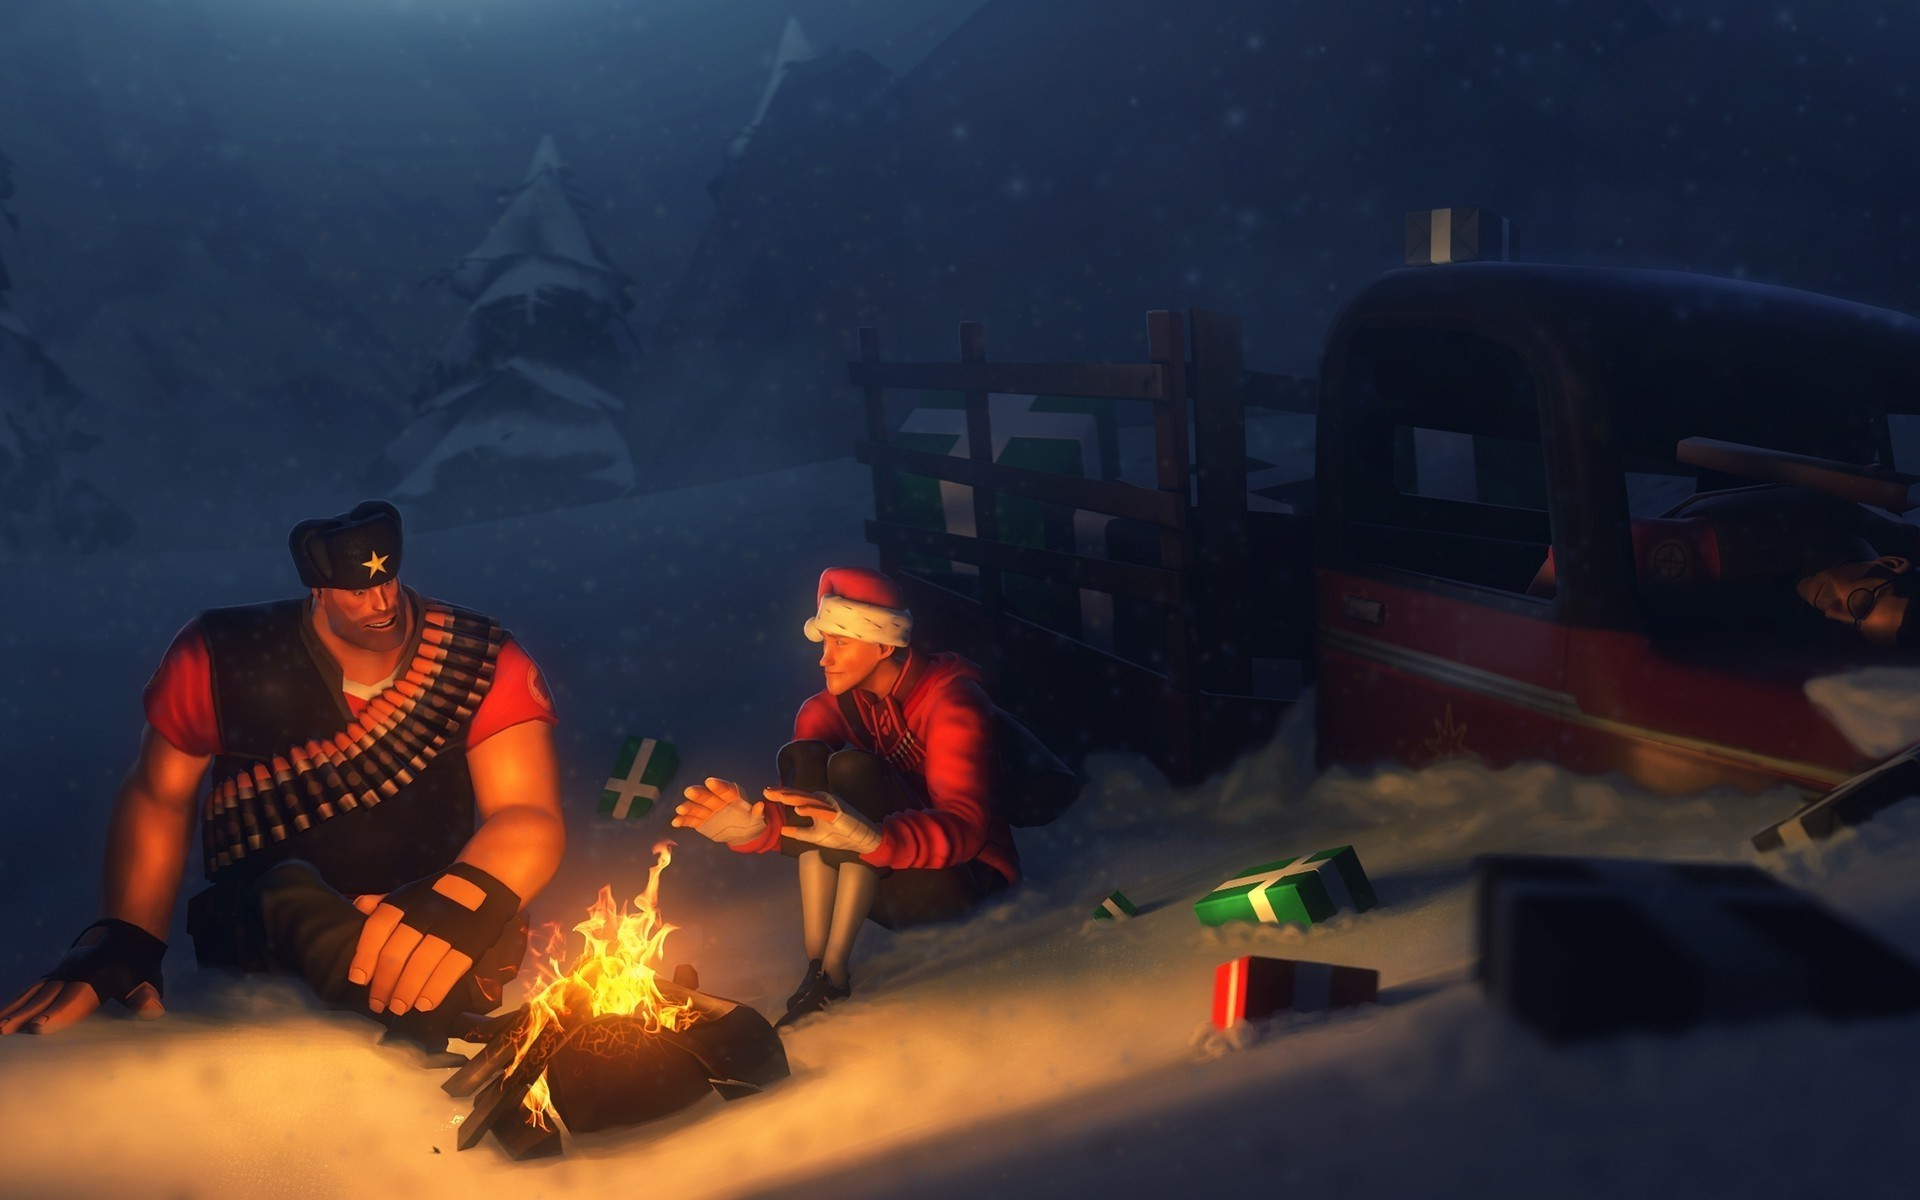 … Digital Art, Team Fortress 2, Fire, Camping, Presents, Happy New Year,  Truck, Heavy, Snow, Campfire Wallpapers HD / Desktop and Mobile Backgrounds